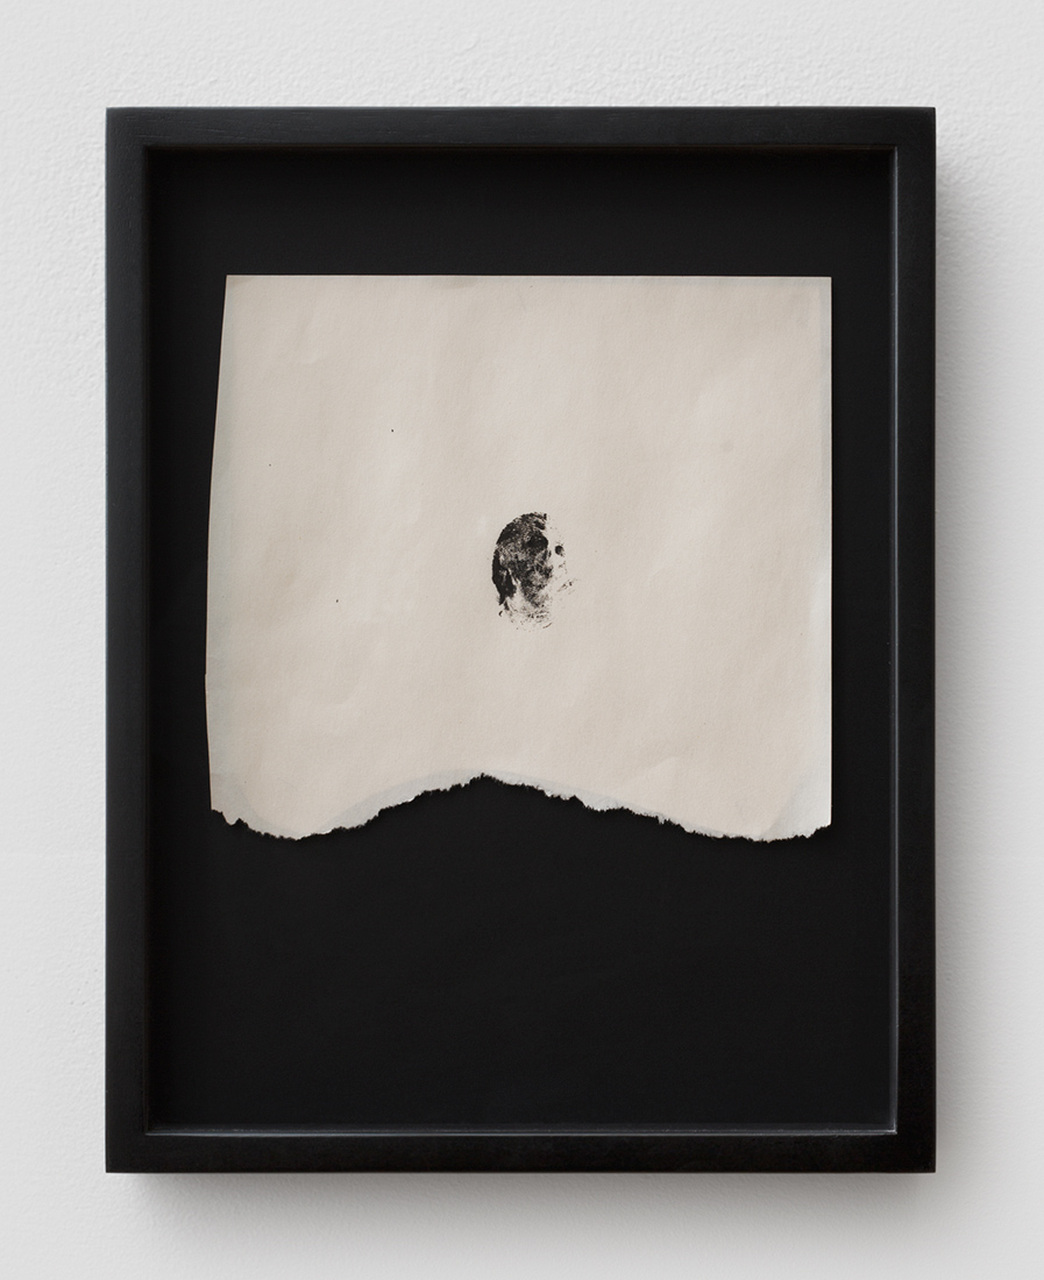 CB9880_MSC_Joao Carvalho Correspondence 2015_ink on paper_12 1_4 x 9 1_2 in